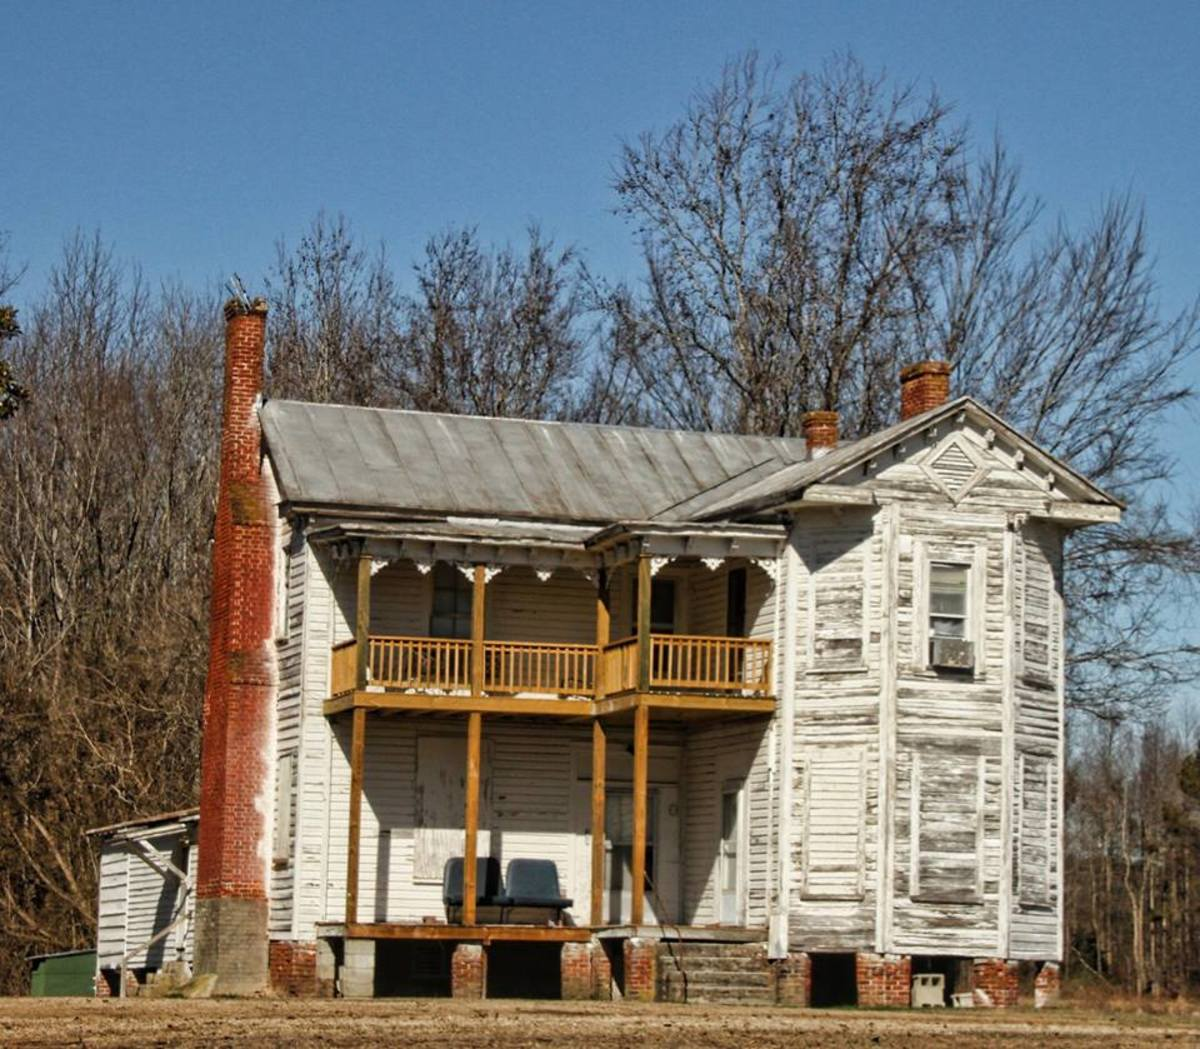 This Victorian era home is in the early stages of renovation